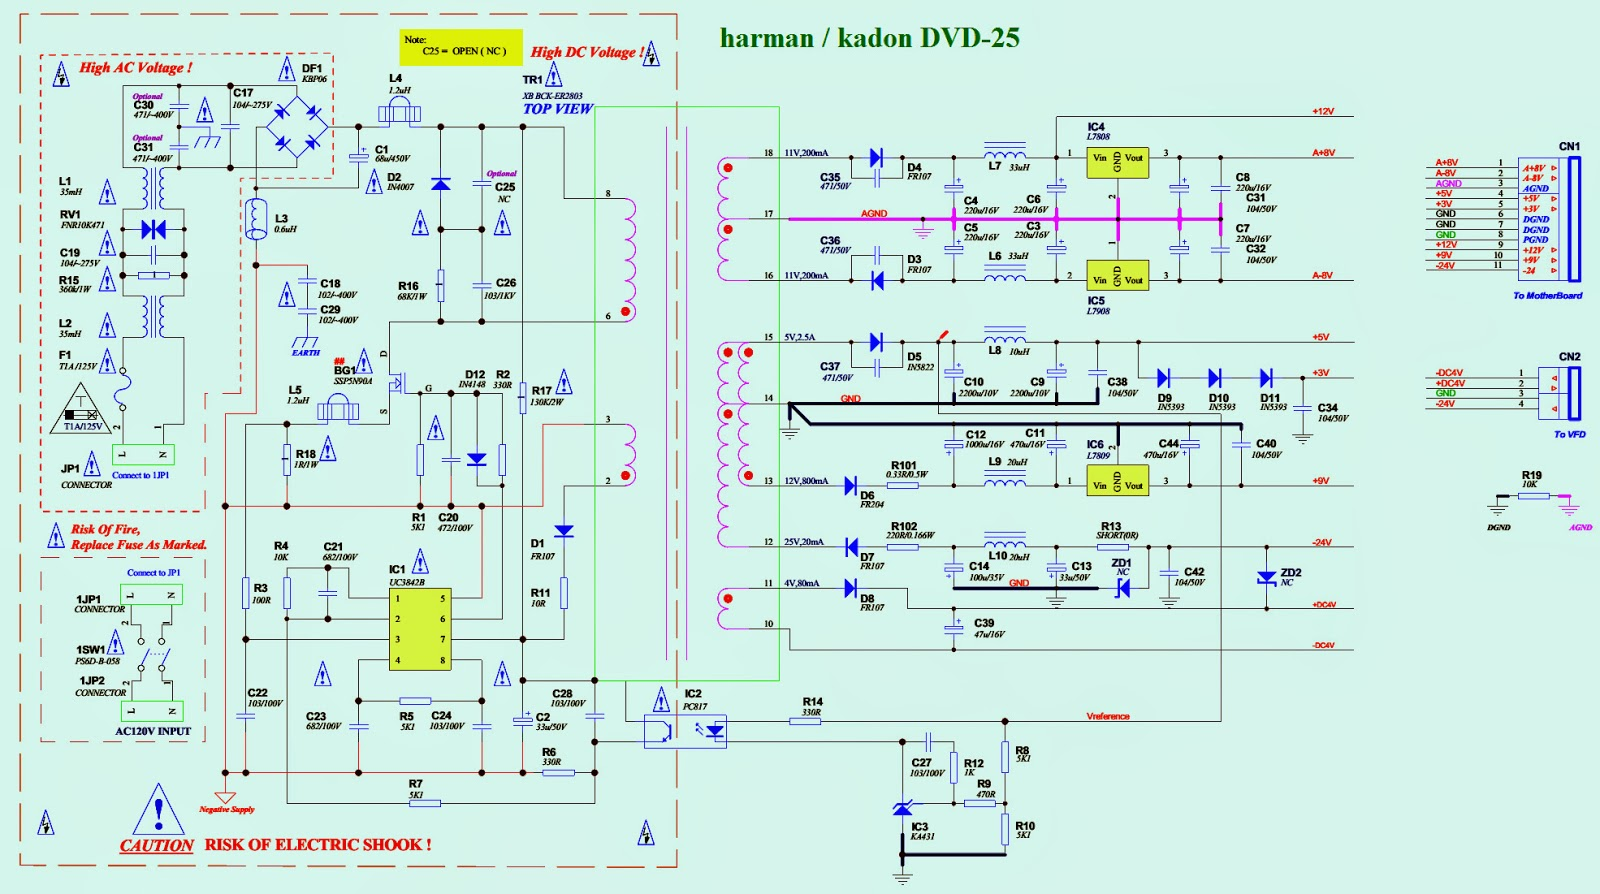 forum diagram harman kardon dvd 25 smps schematic wiring diagram smps schematic click on the pictures to zoom in